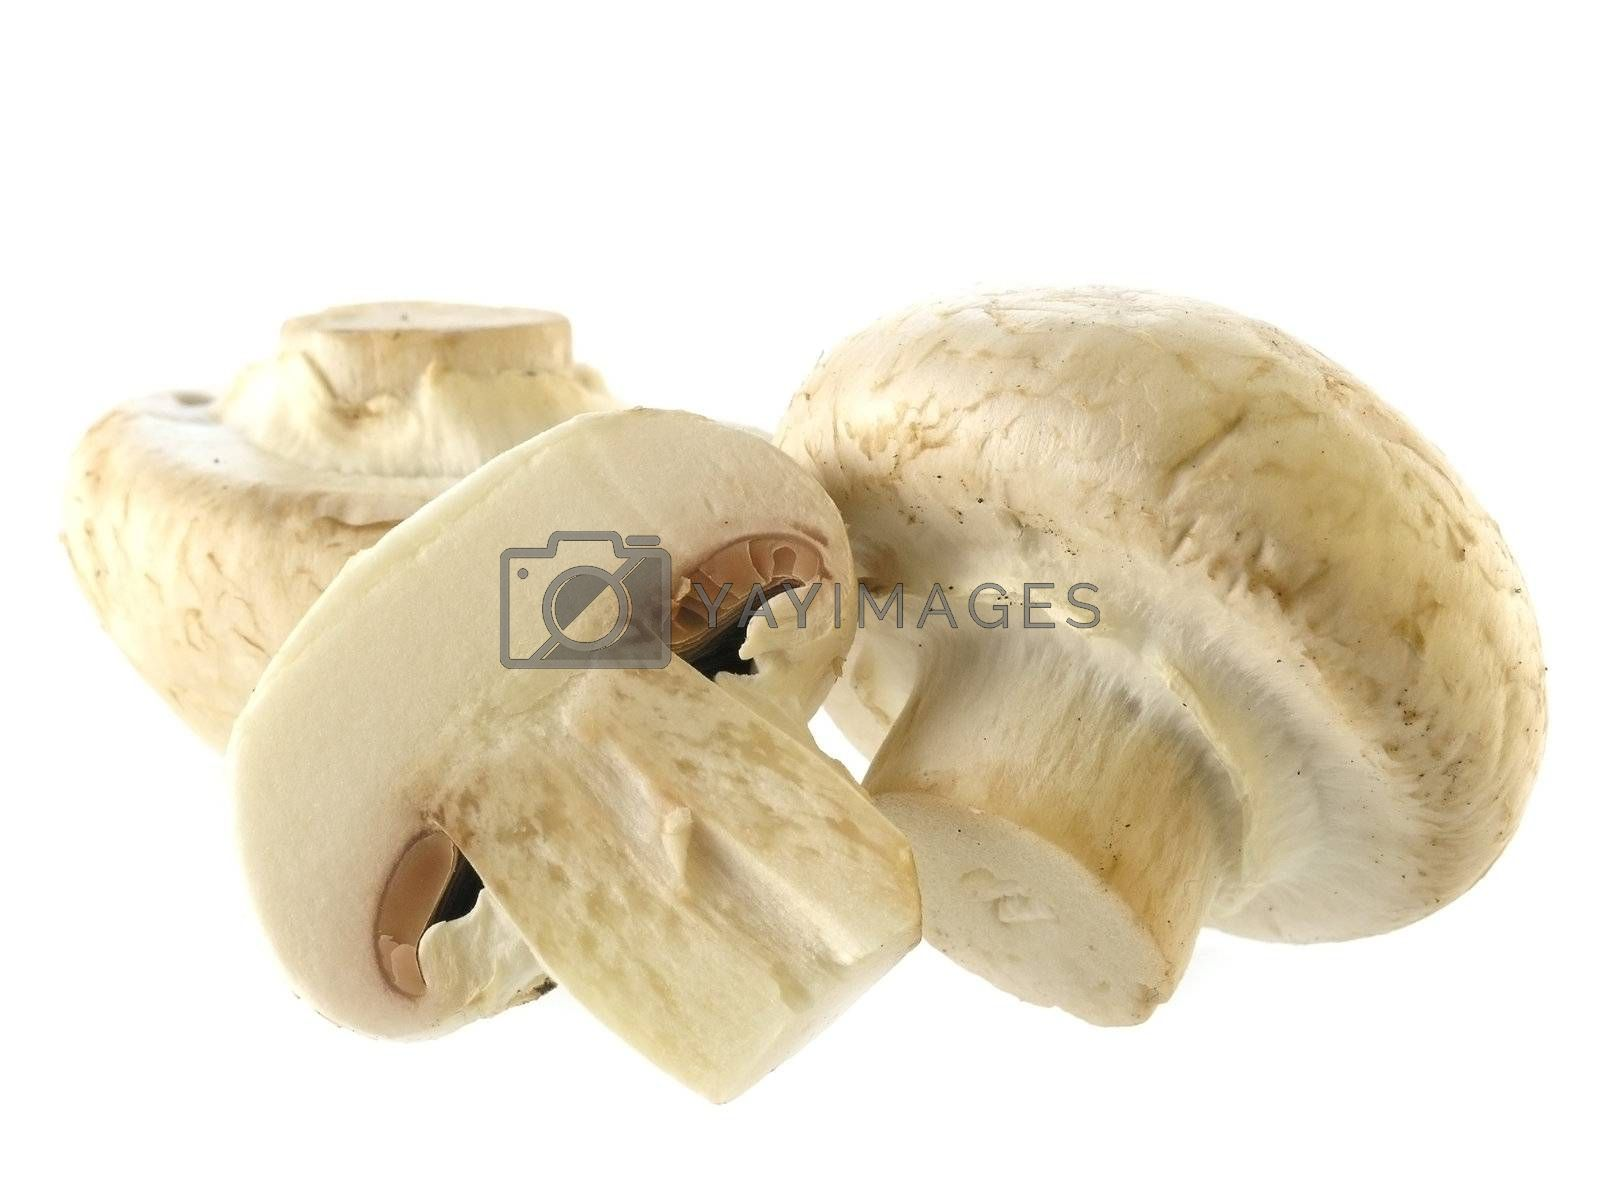 food series: fresh mushrooms isolated on solid background